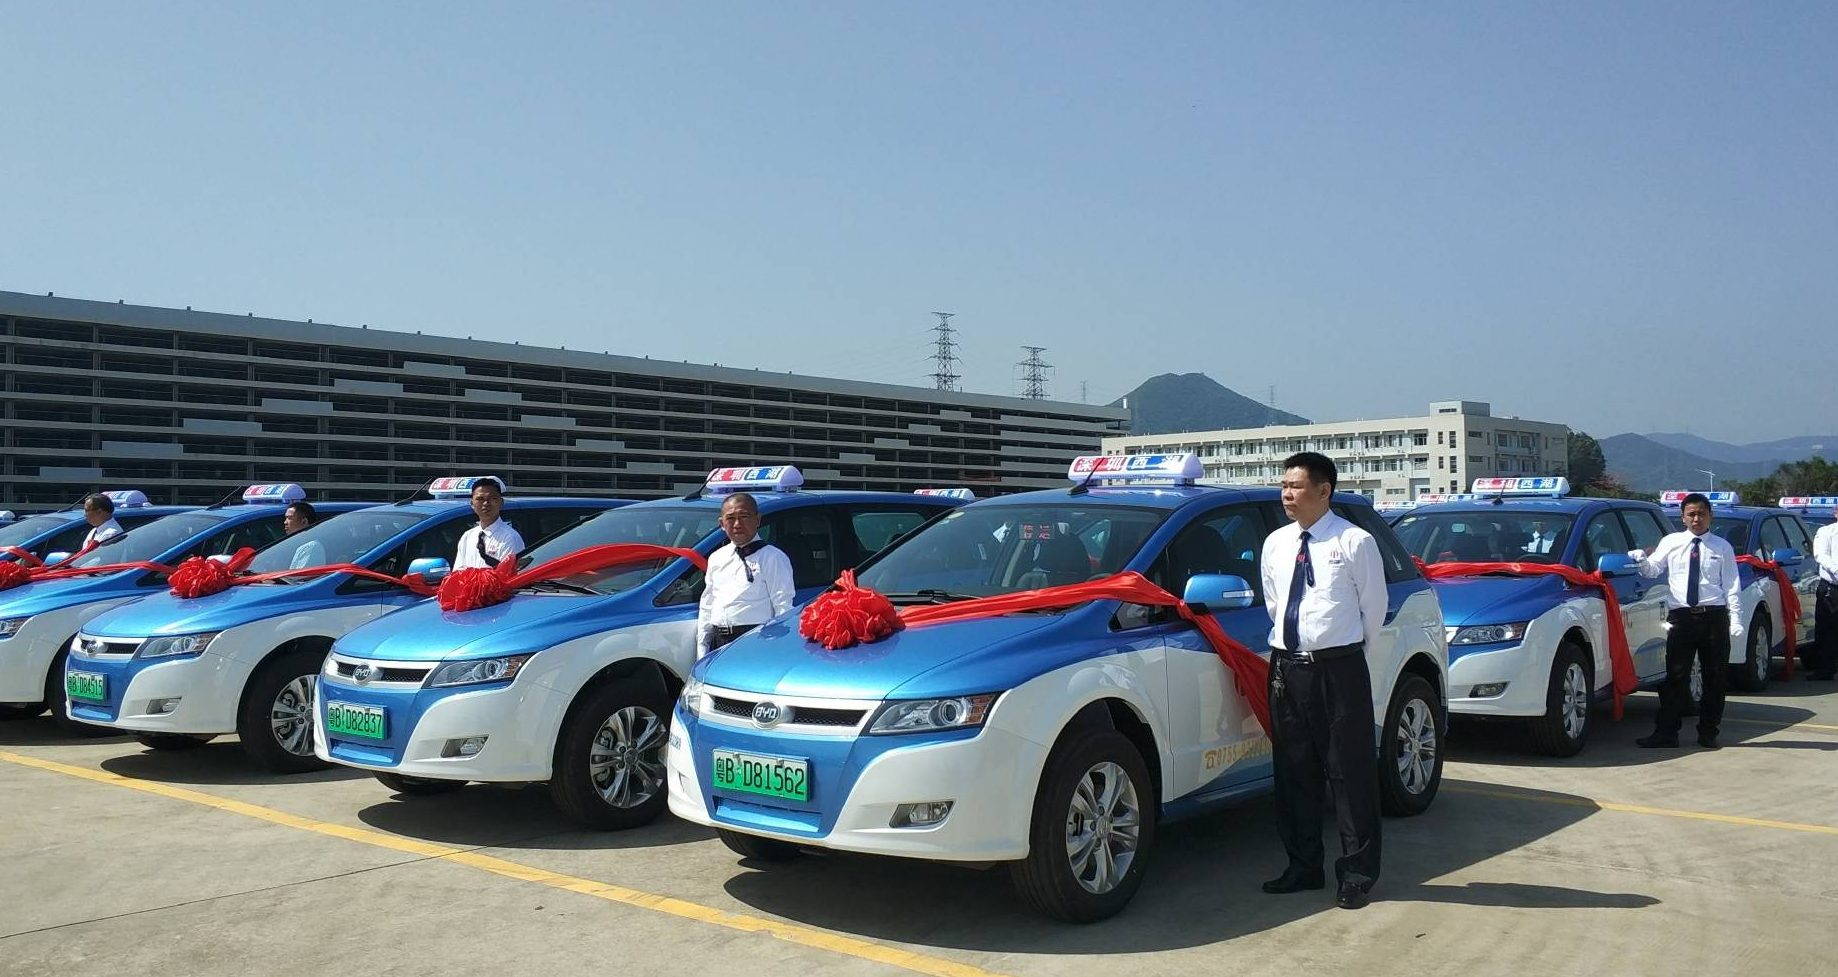 First buses, now Shenzhen has turned its taxis electric in green